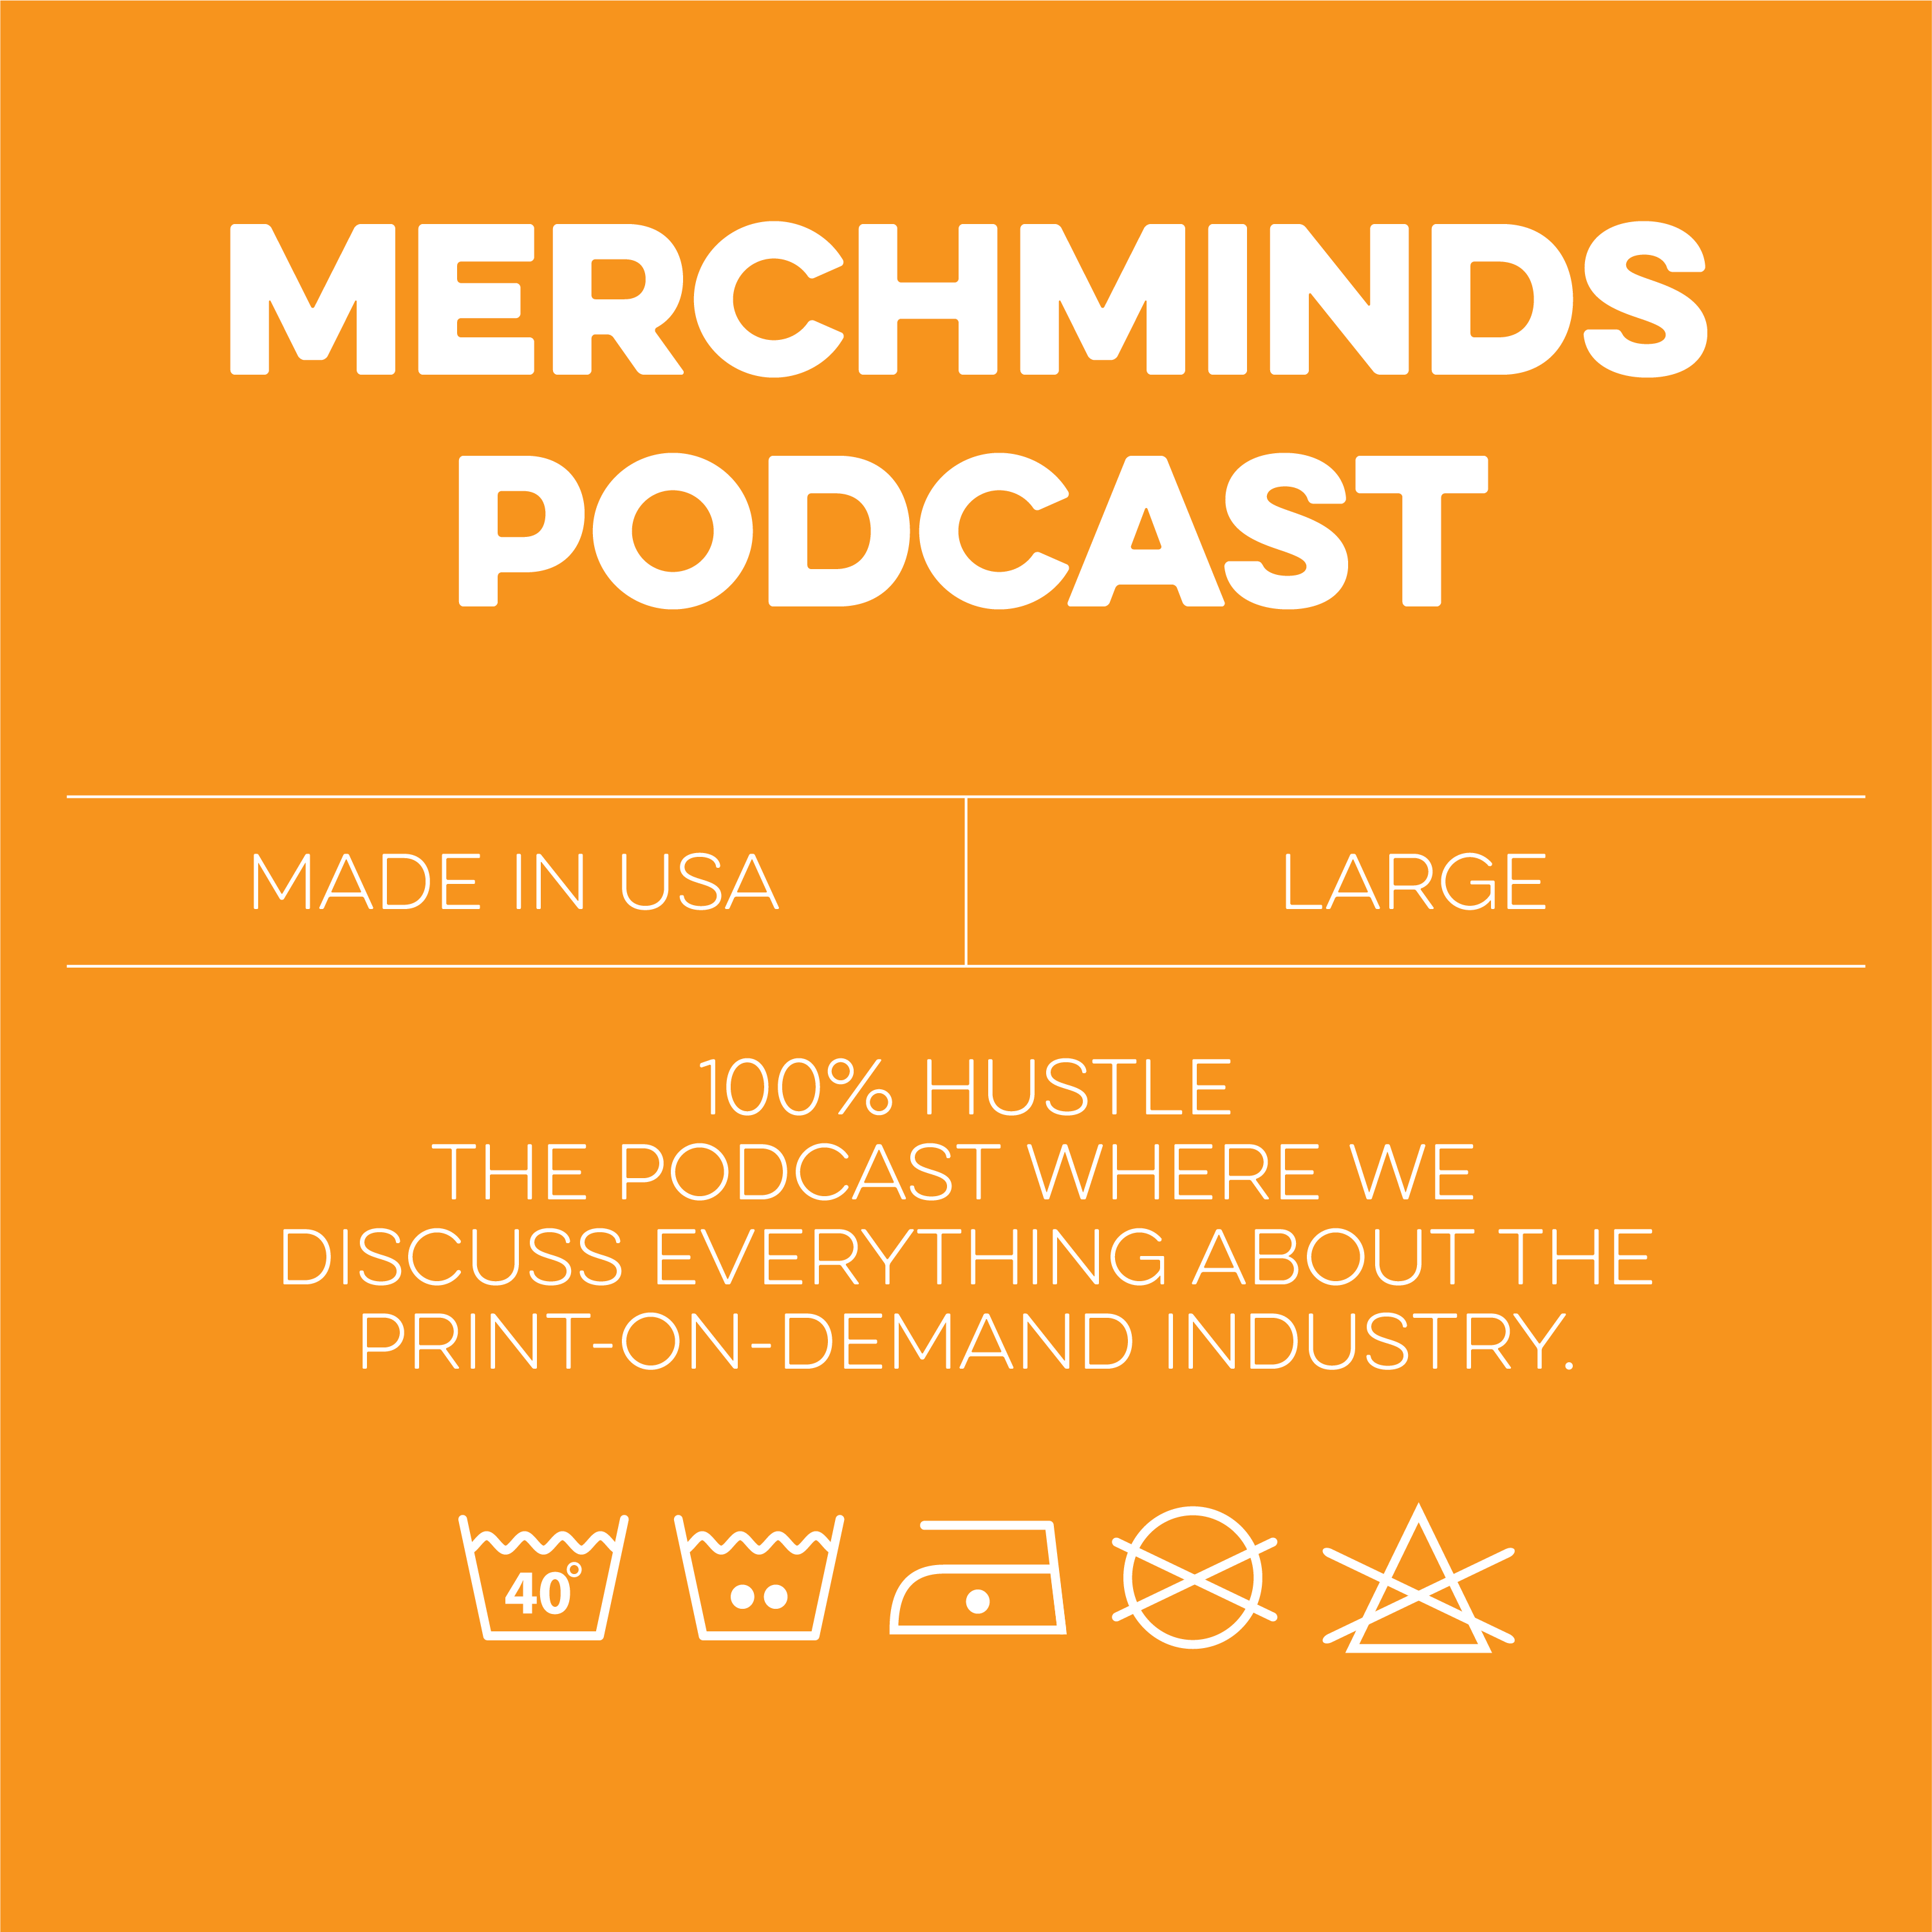 Merch Minds Podcast - Episode 154: Getting Down and Dirty With Filthy Phil show art